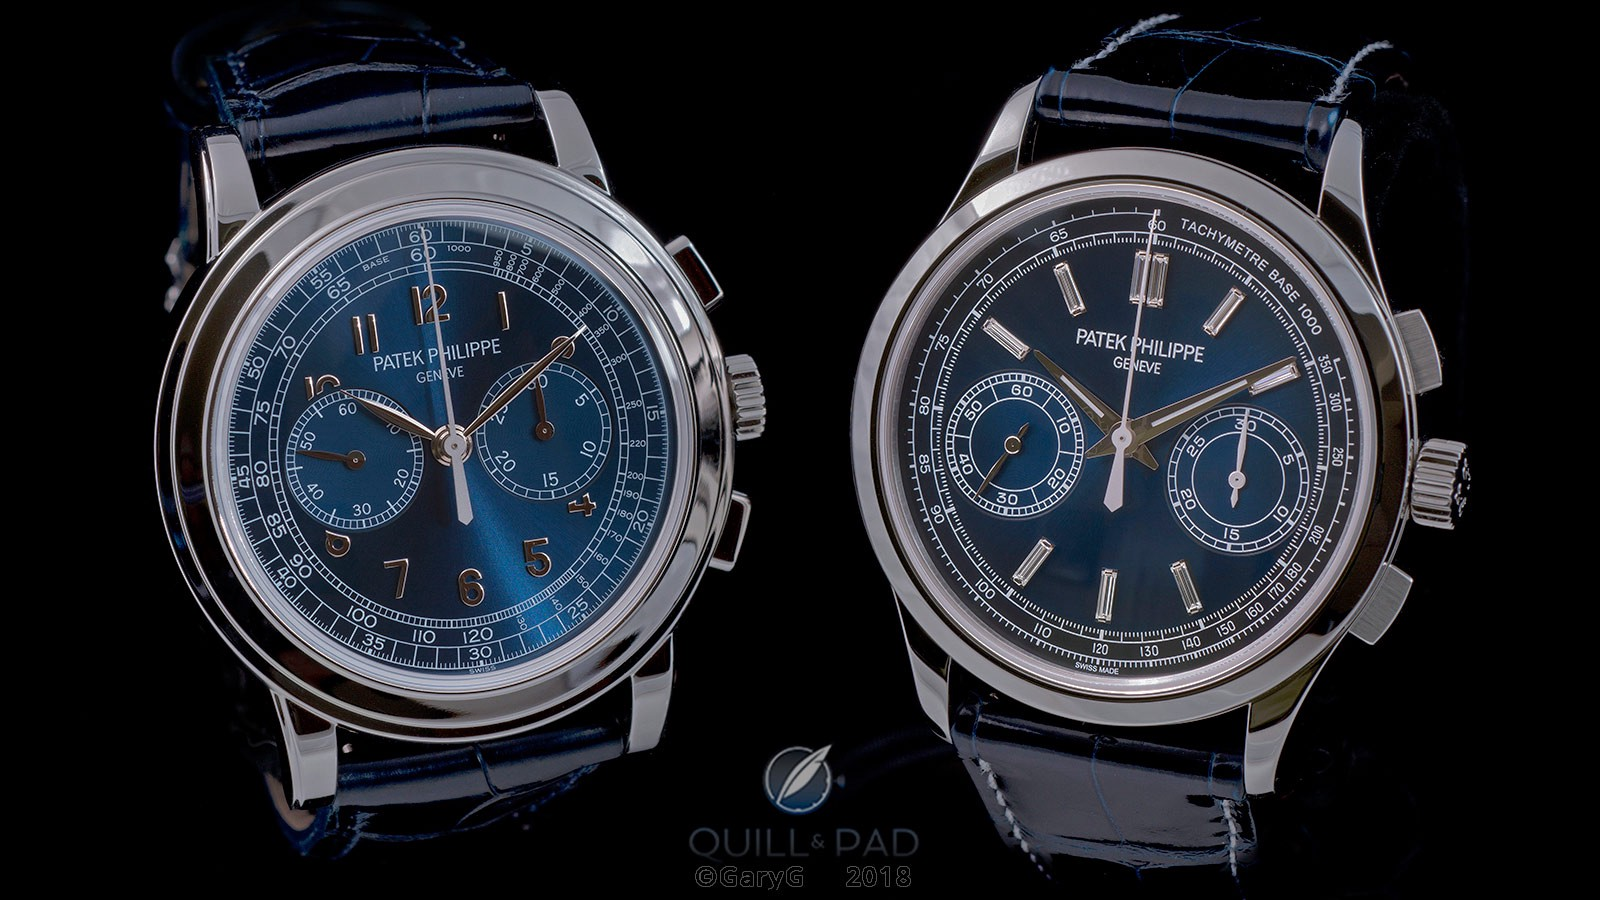 Big hitters: Patek Philippe Reference 5070P-013 (at left) and Reference 5170P